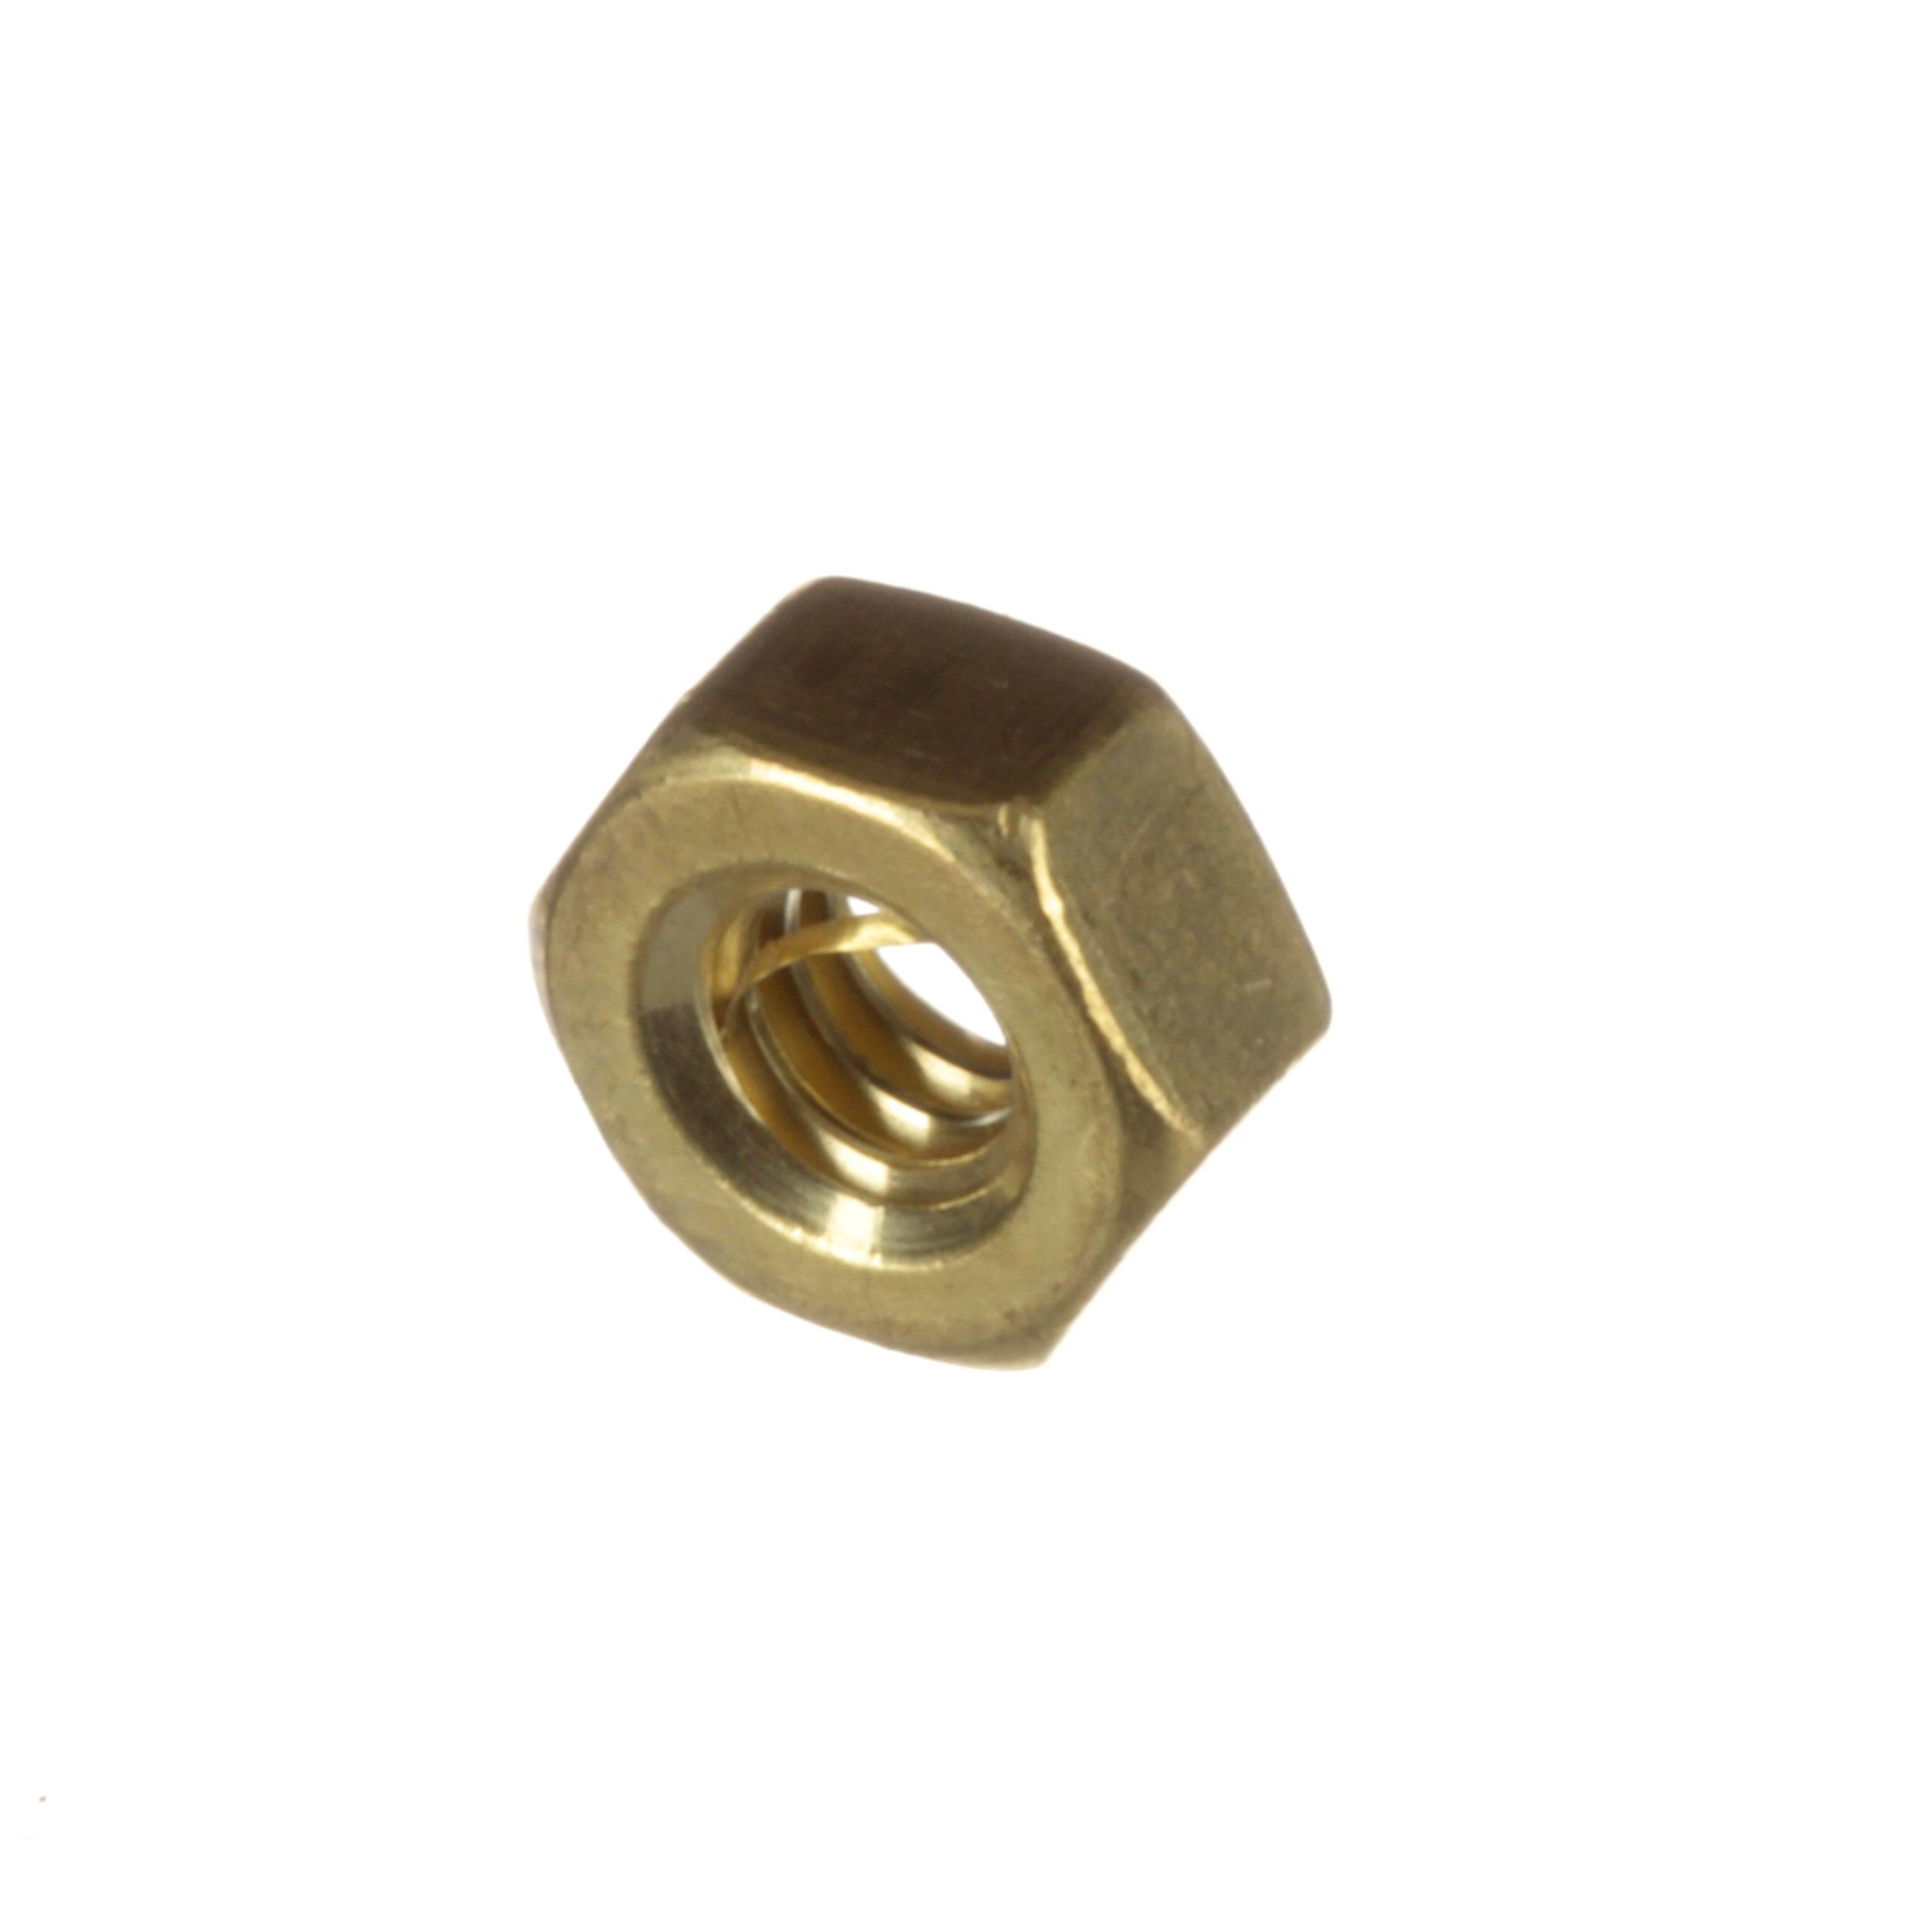 CLEVELAND NUT;1/4-20; 7/16 HEX; BRASS